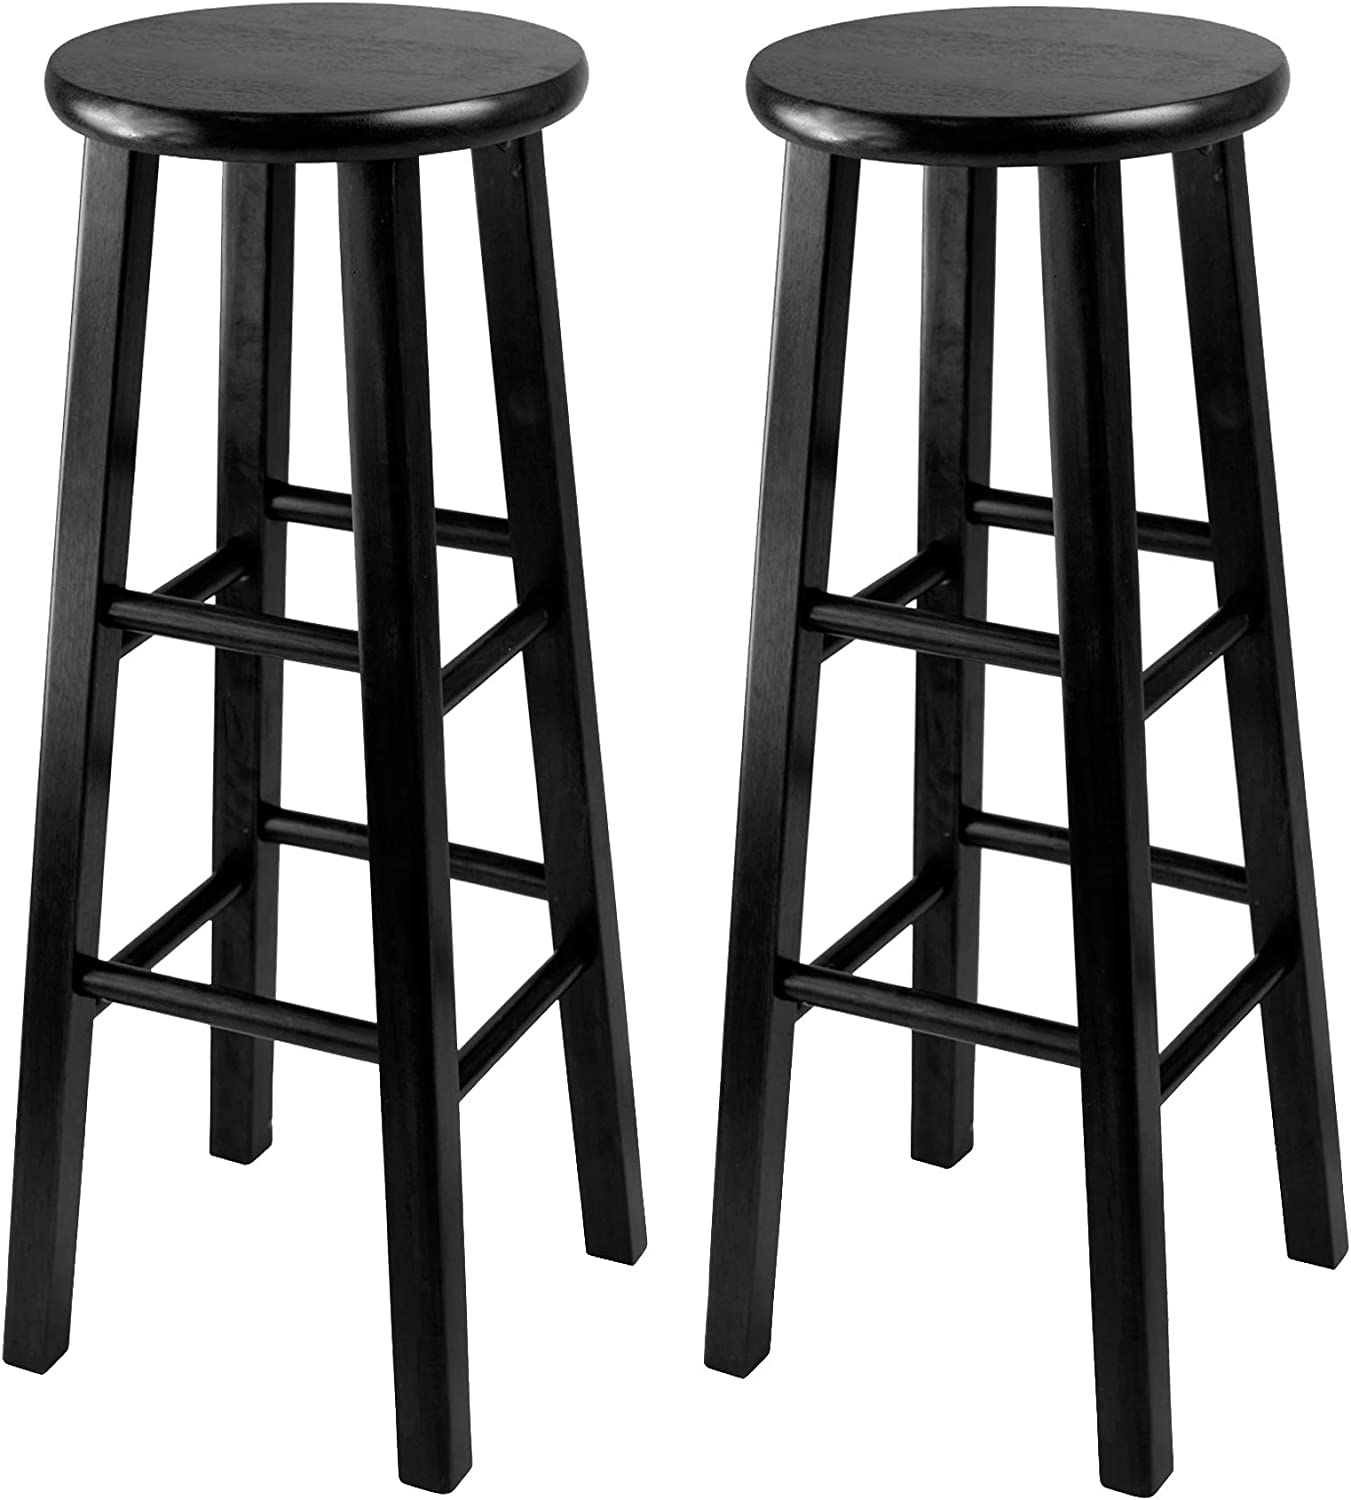 Winsome Wood 29-Inch Square Leg Bar Stool, Black, Set of 2